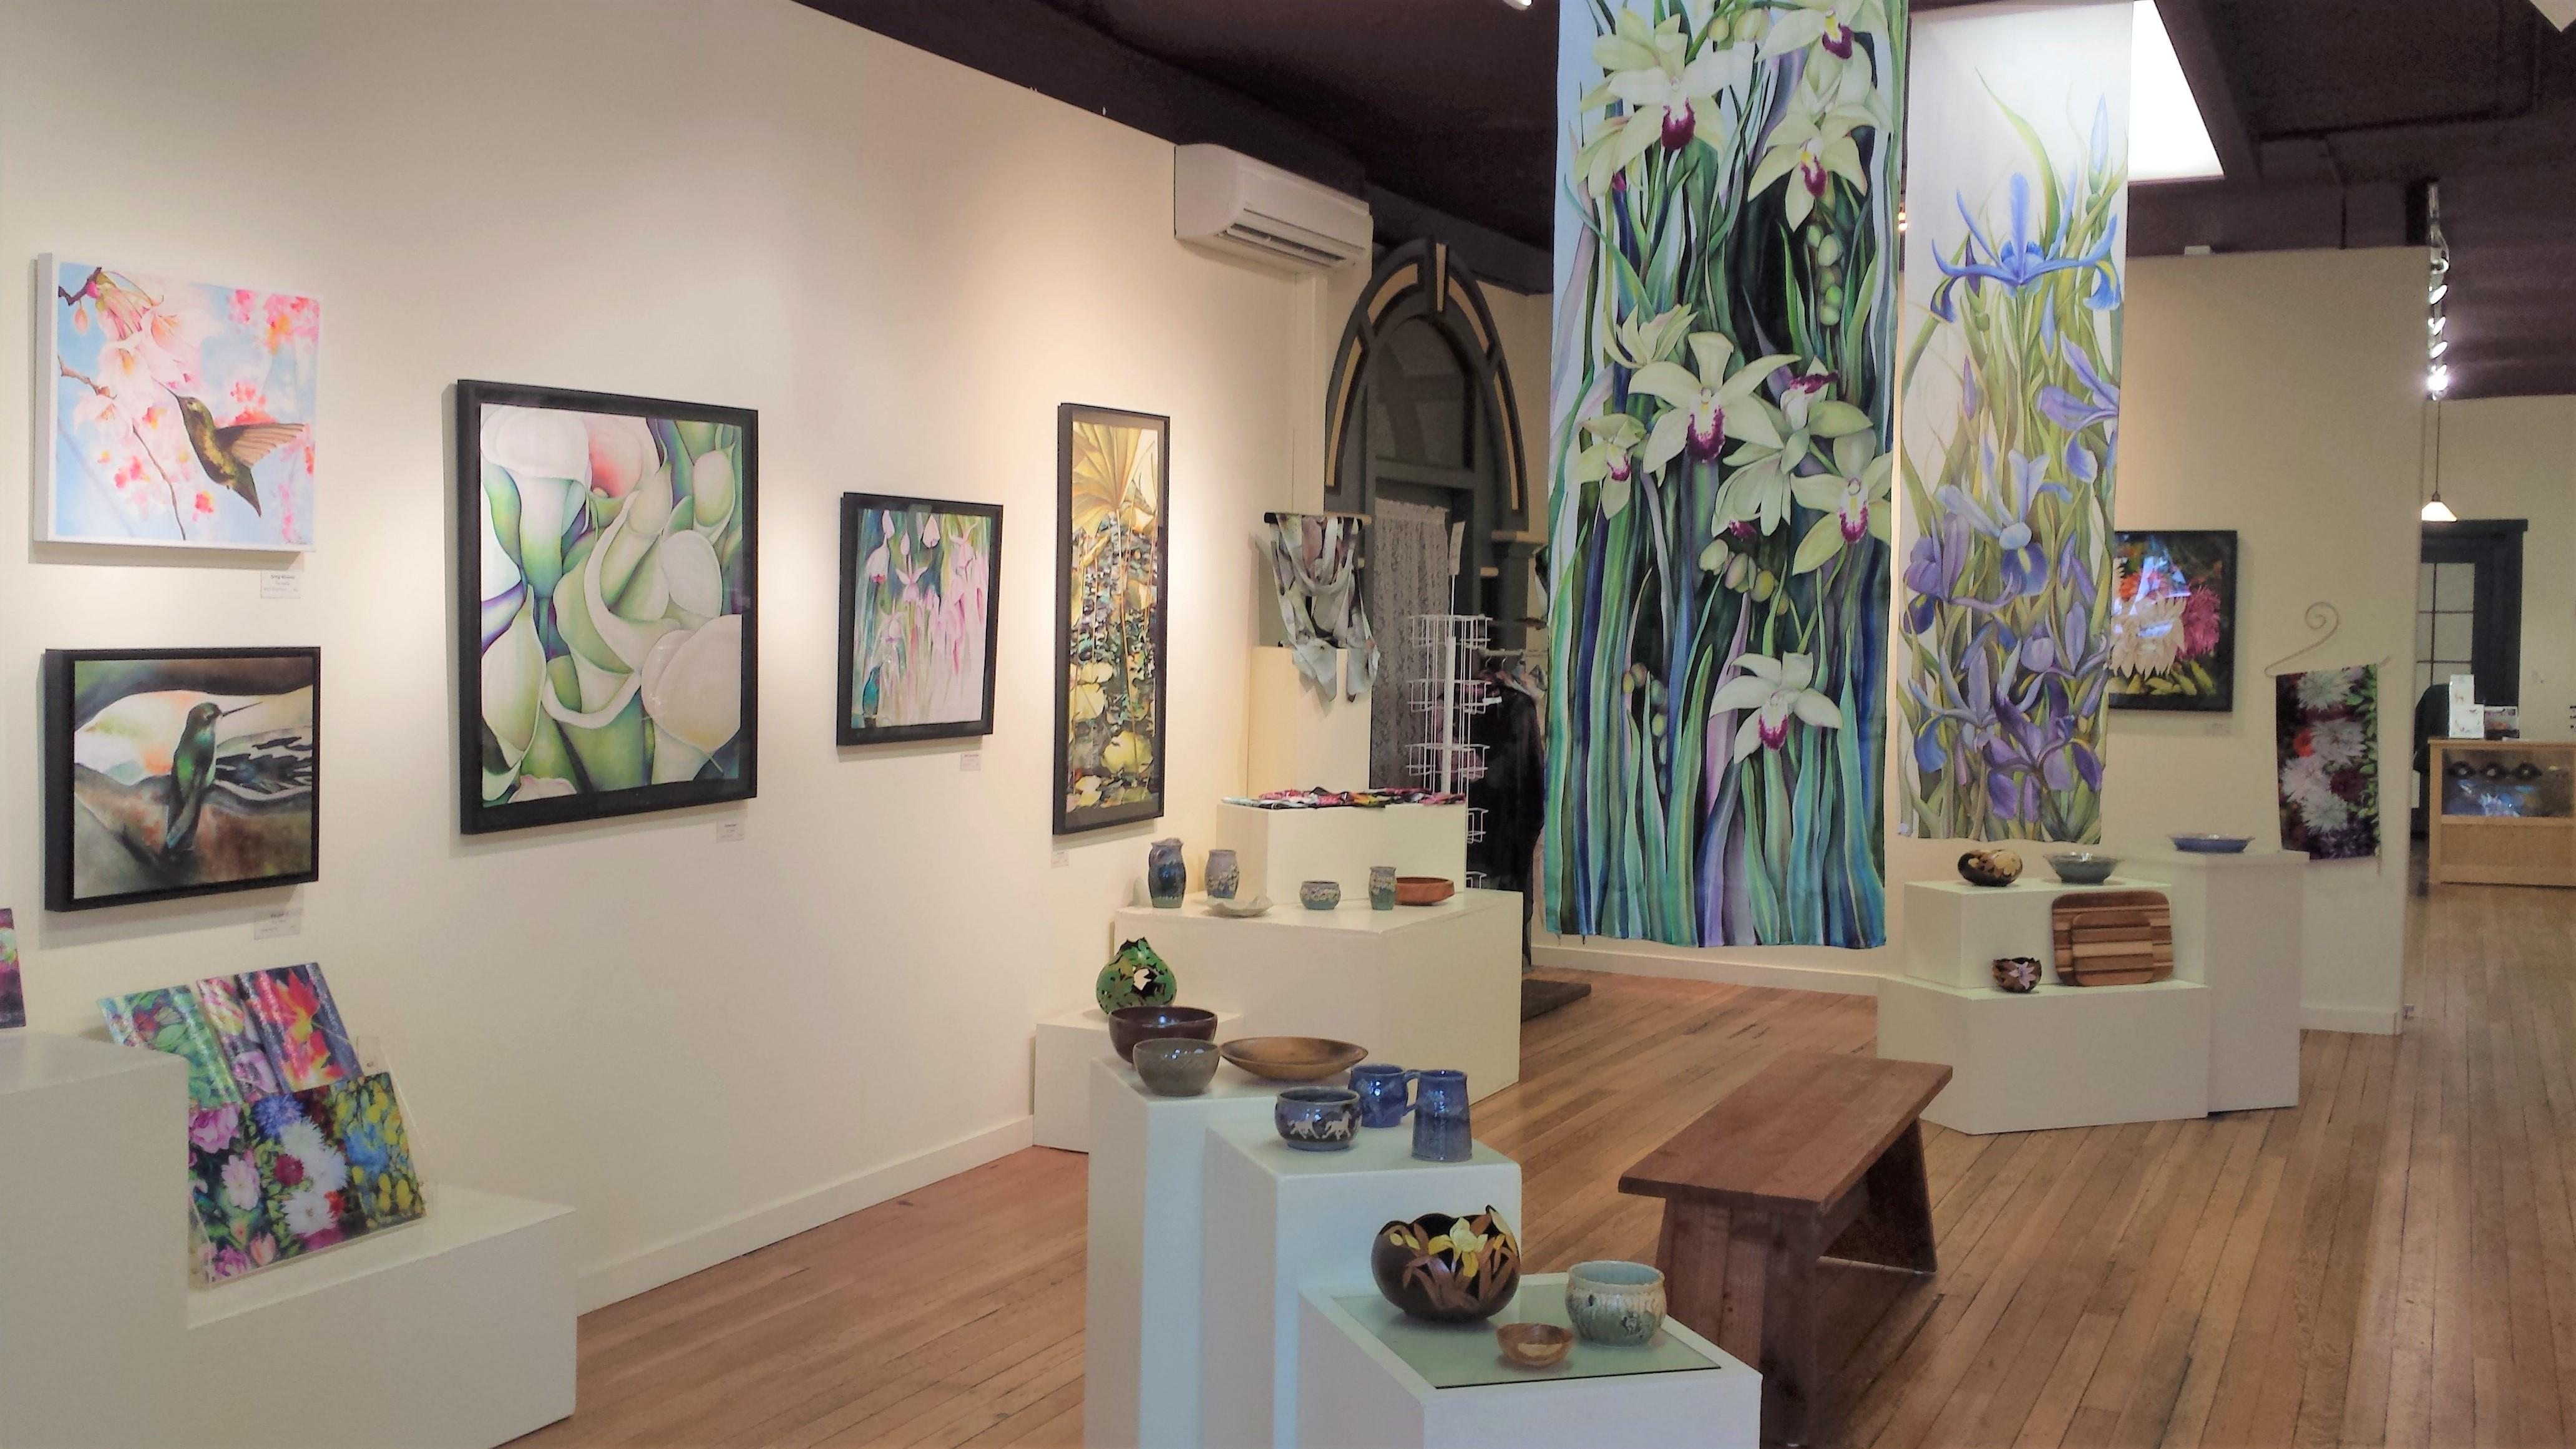 Come take a peek at the vibrant display of local art.